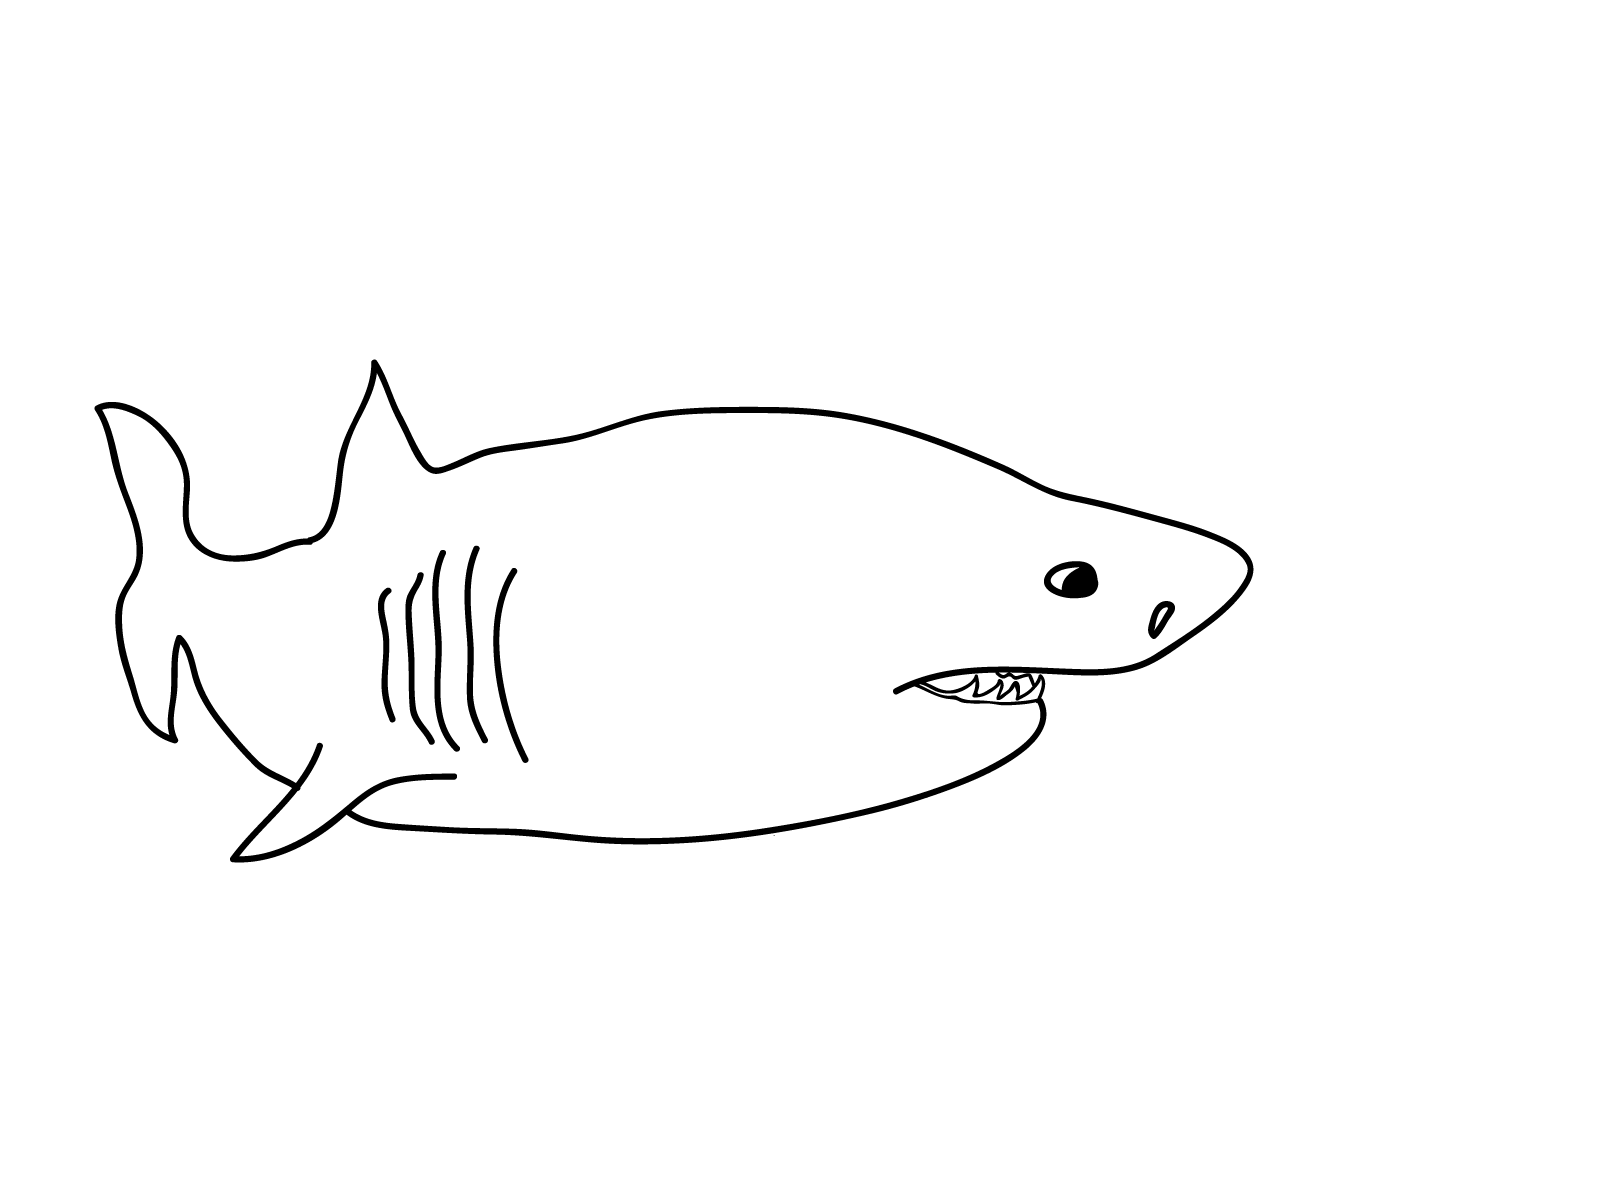 photo regarding Free Printable Shark Coloring Pages identify Free of charge Printable Shark Coloring Webpages For Small children